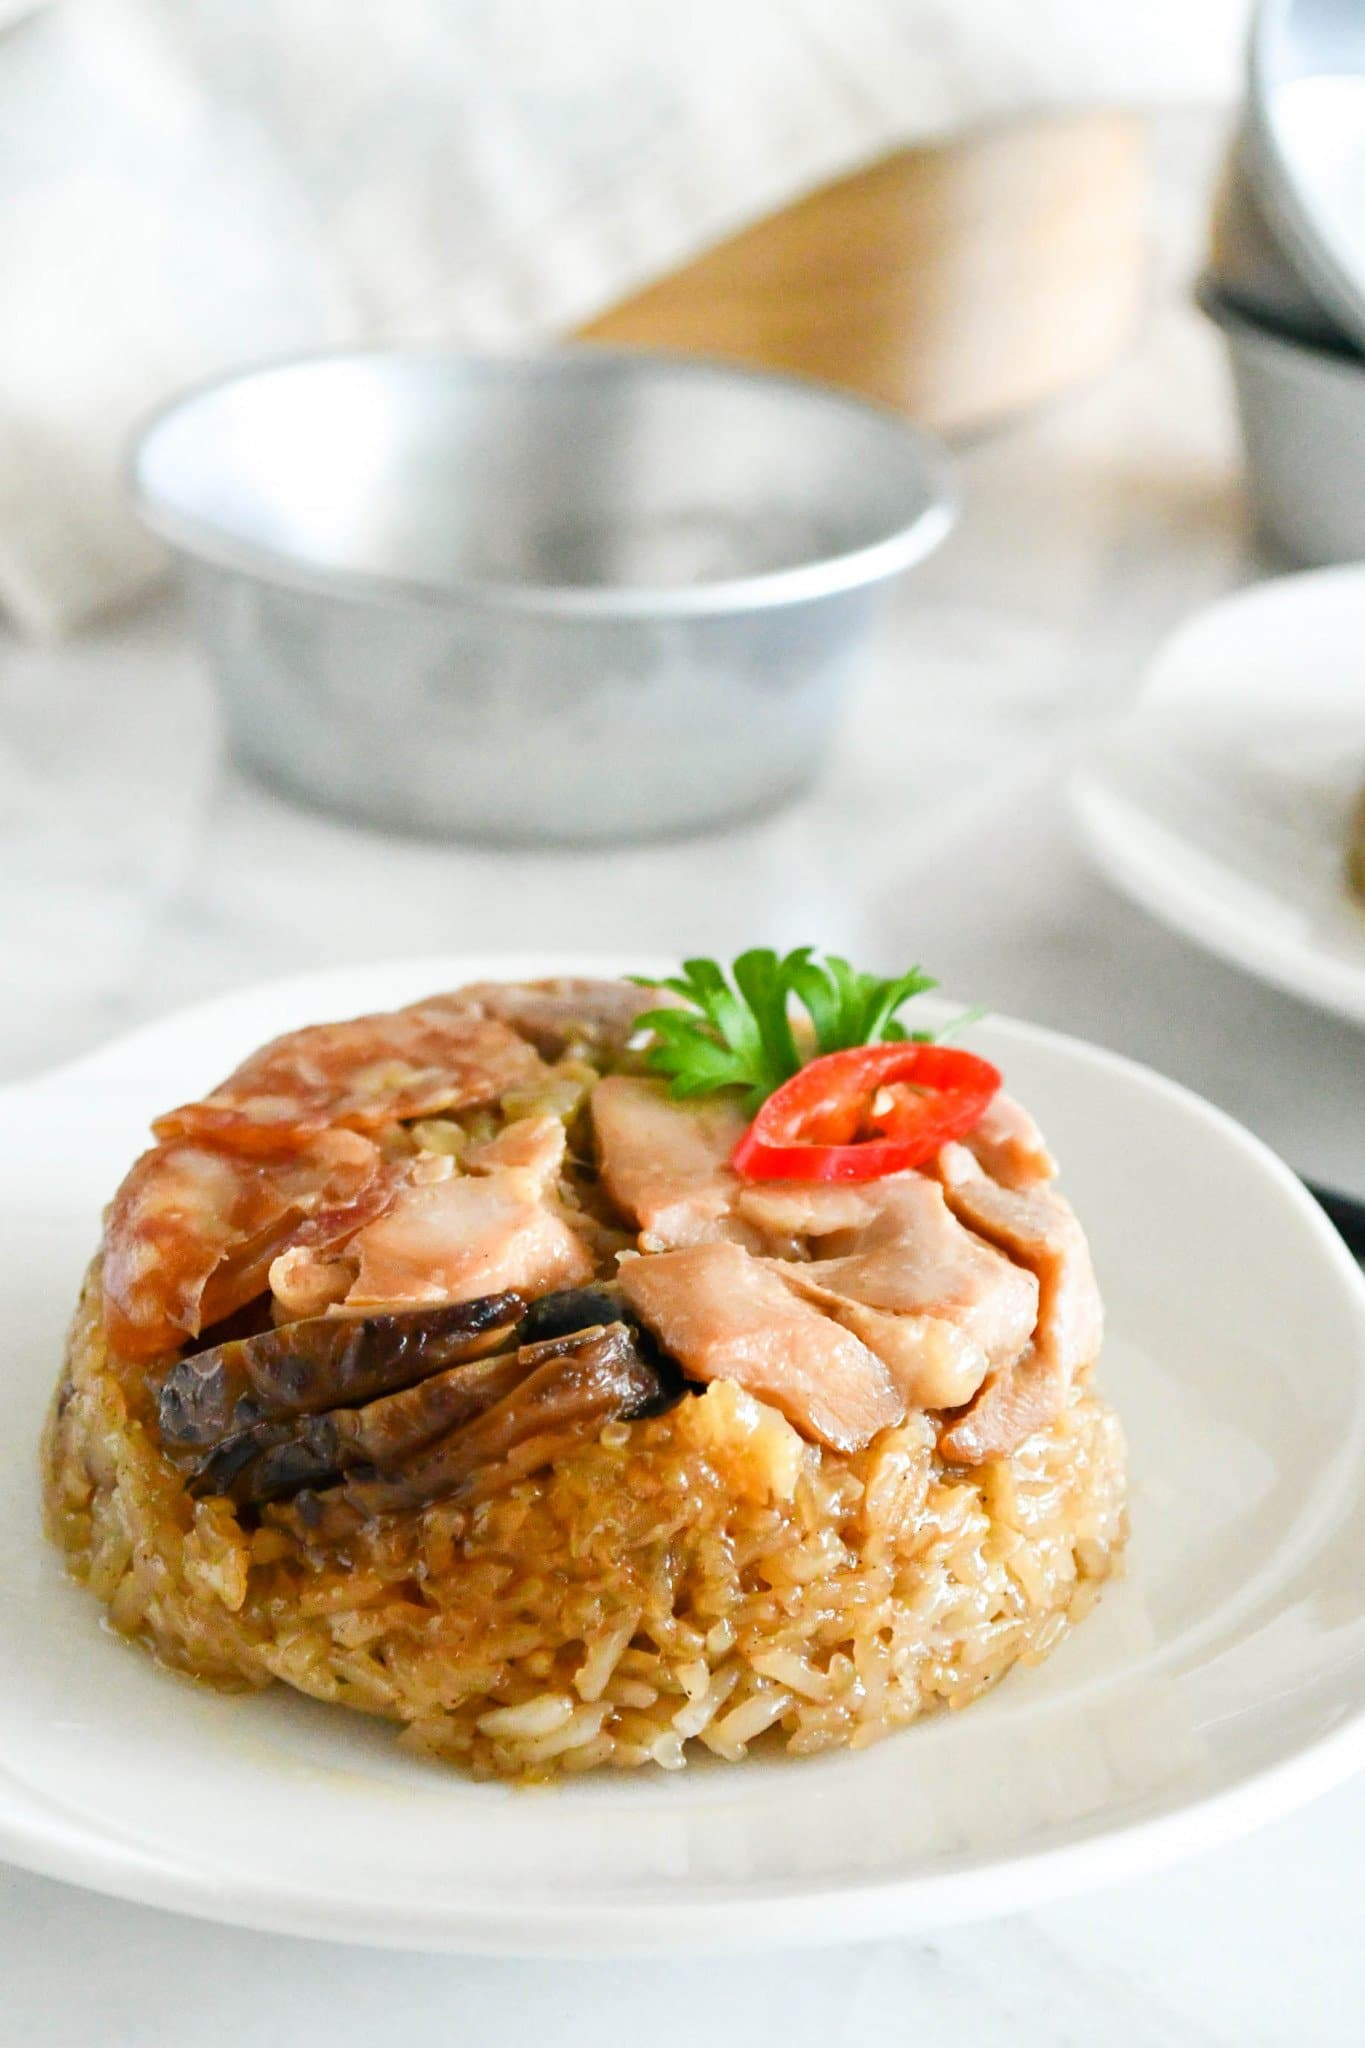 loh ma kai (steamed glutinous rice with chicken) on a plate